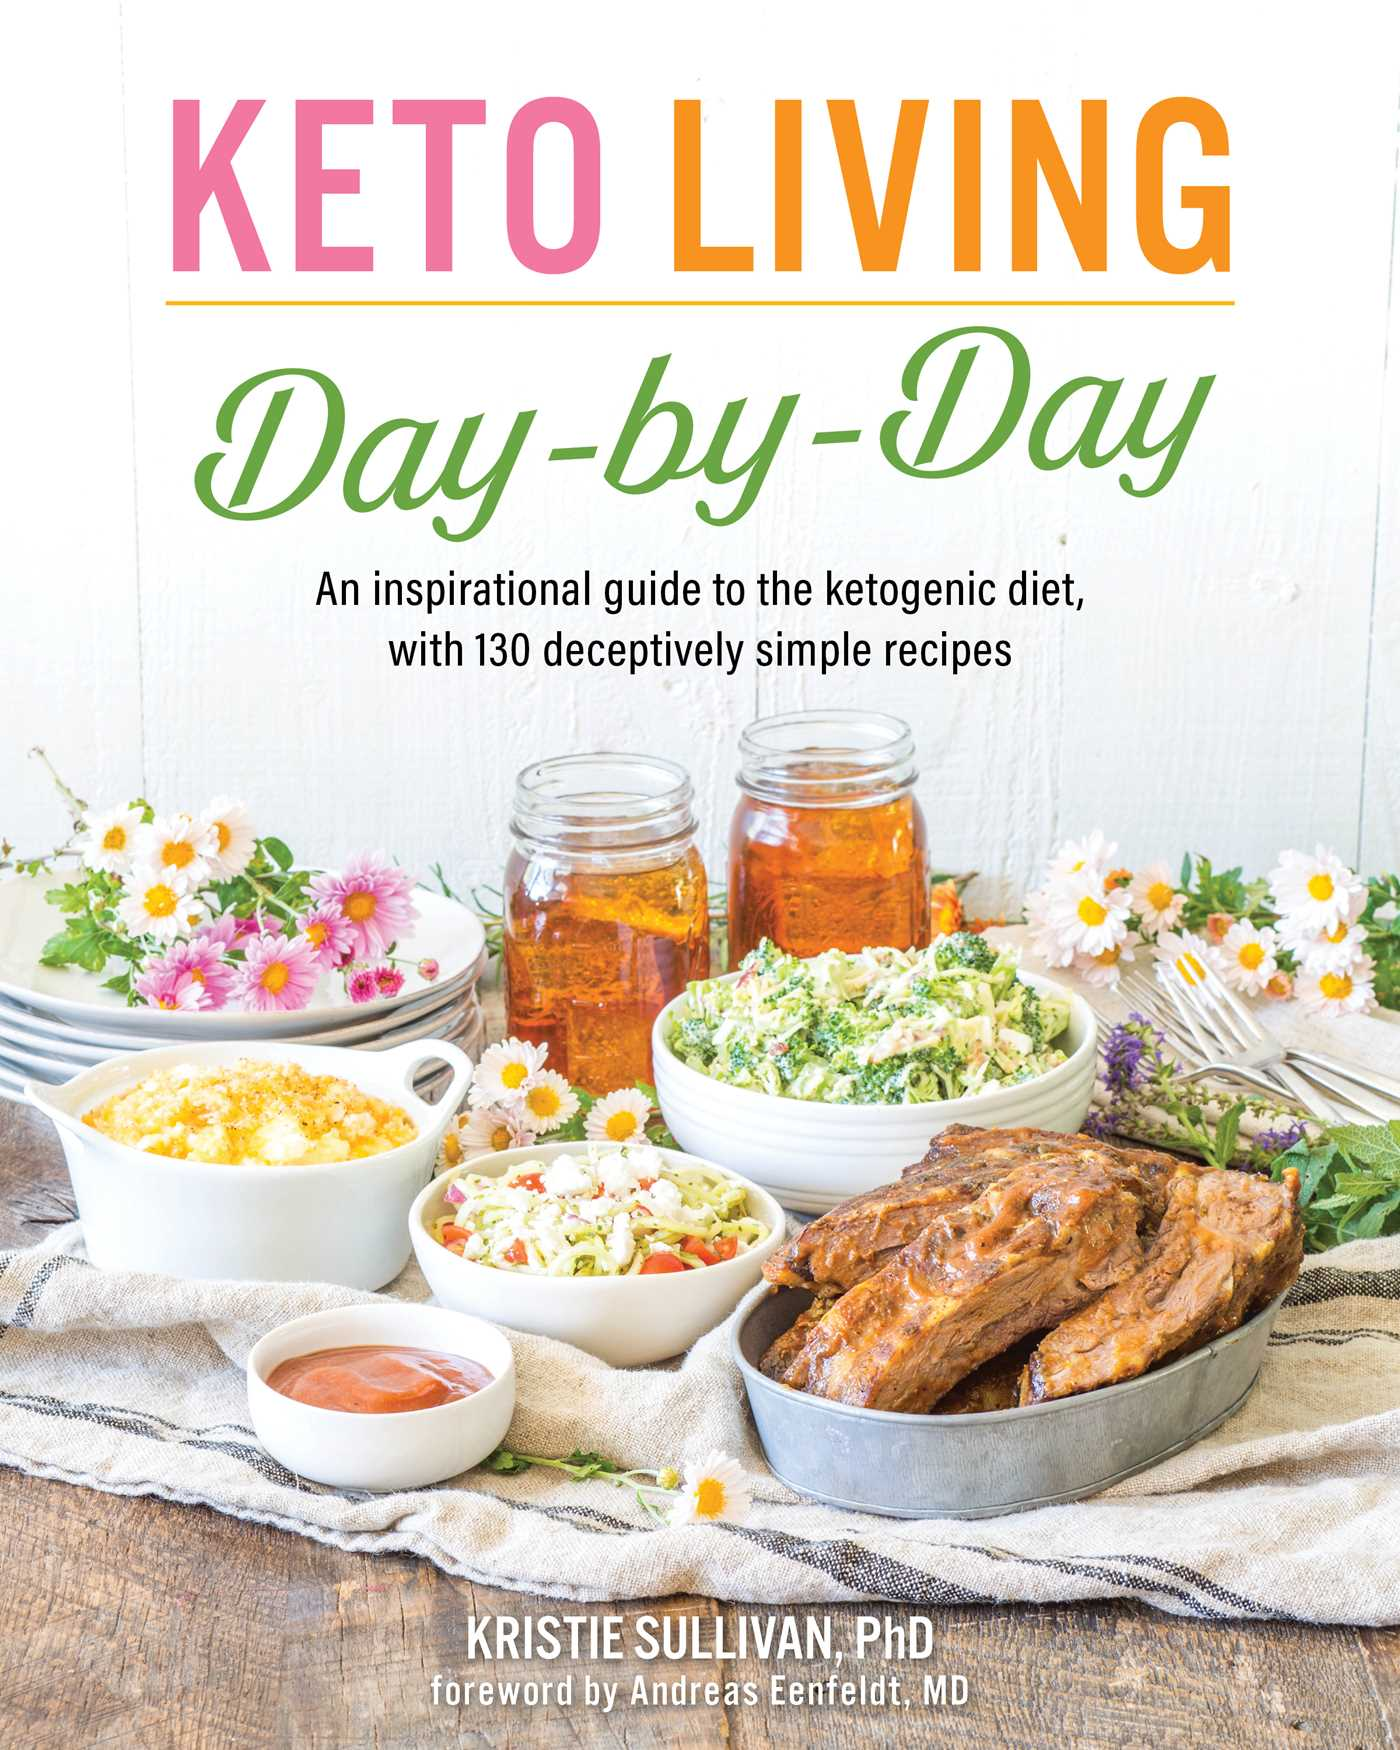 Keto living day by day 9781628602722 hr